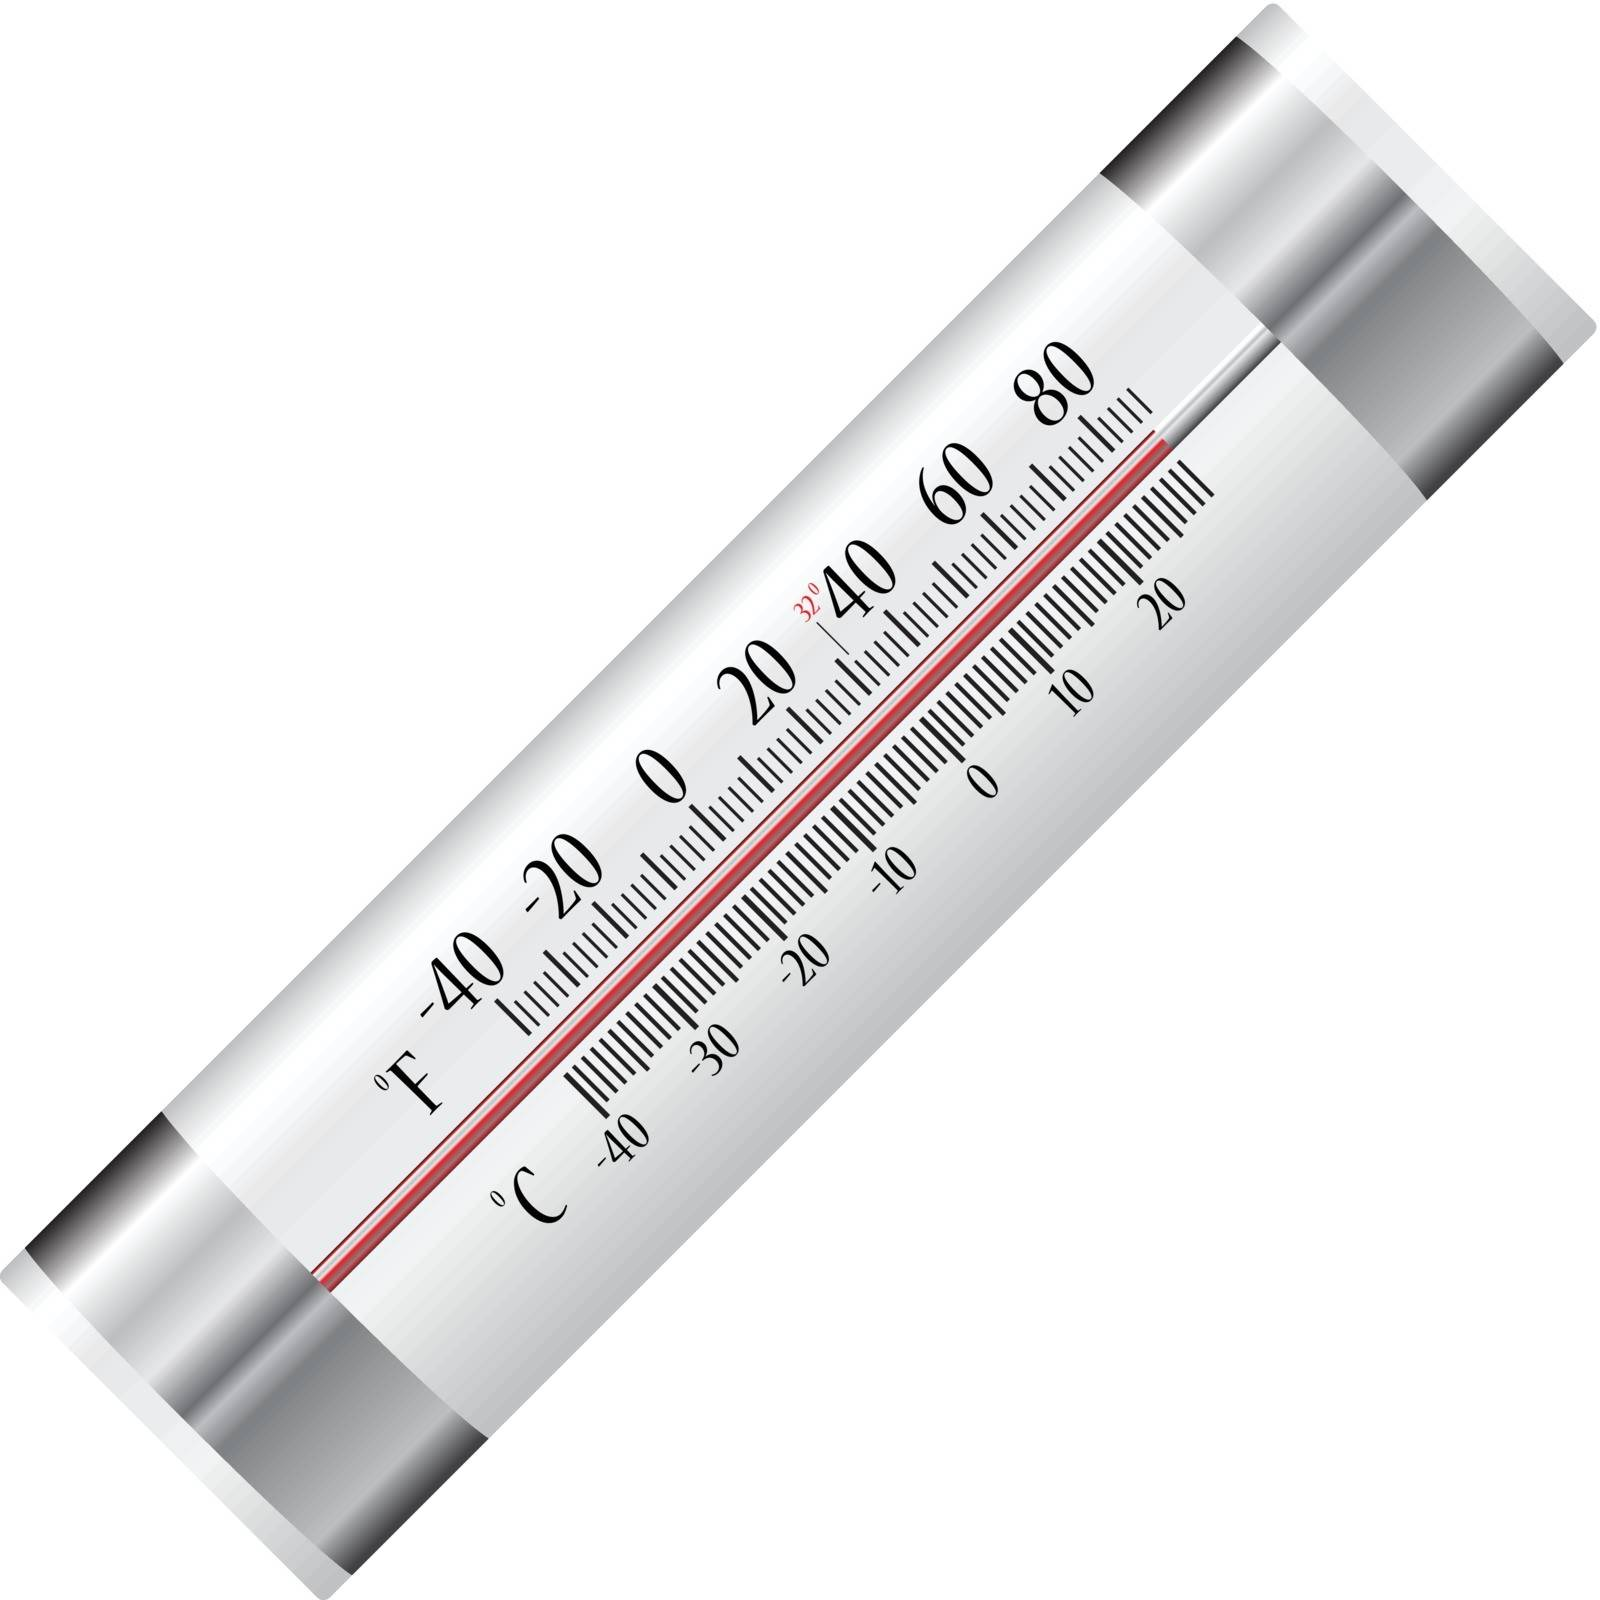 Alcohol thermometer for refrigerator with two scales in Celsius and Fahrenheit. Vector illustration.